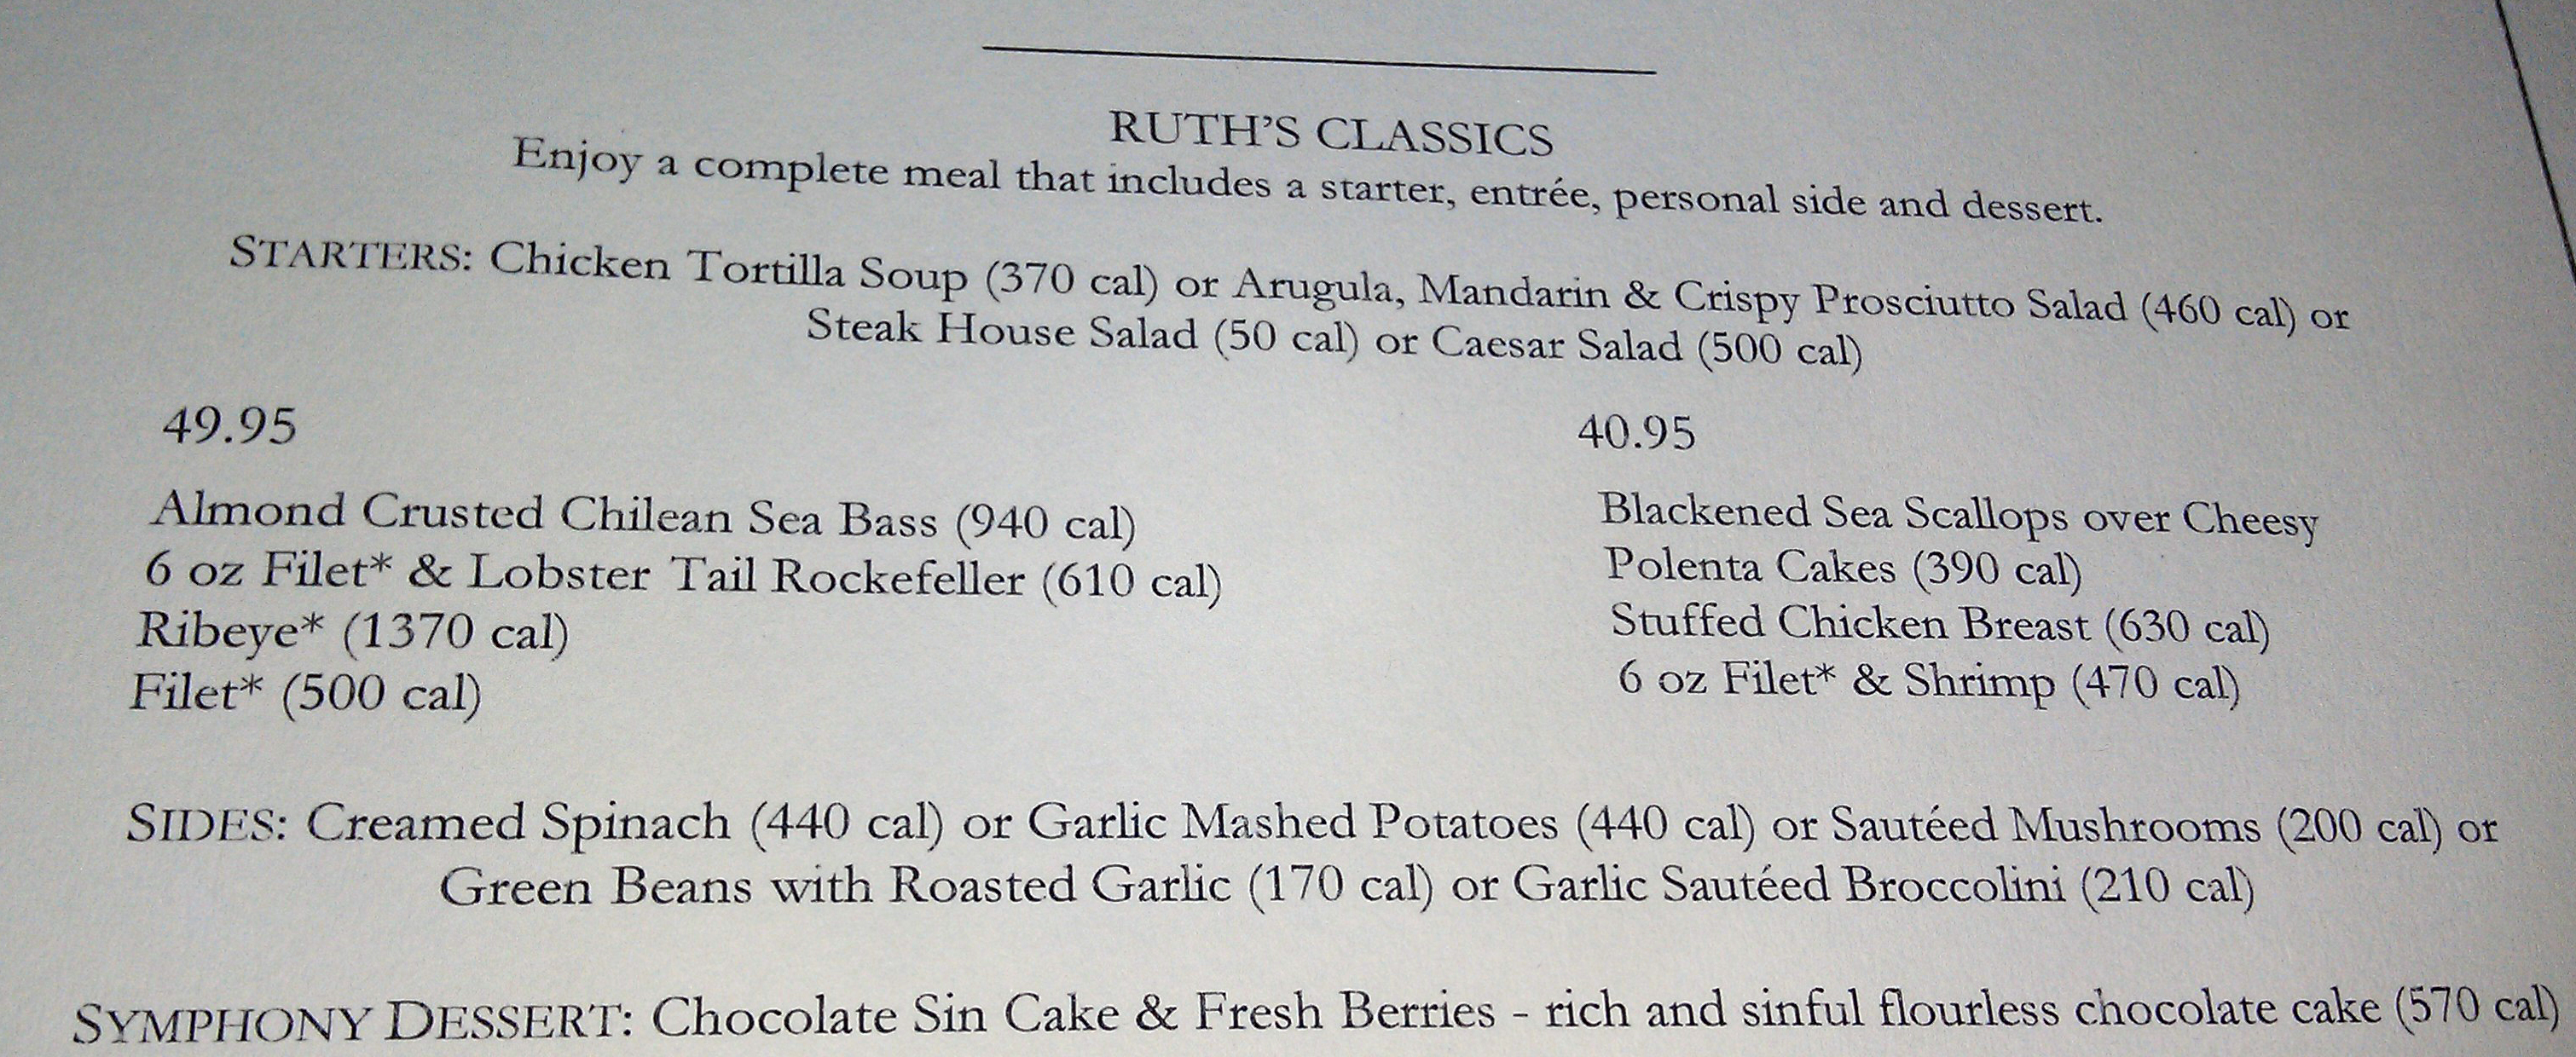 RUTH'S 3-COURSE Holiday MENU CREATED BY OUR CHEFS, TAILORED TO YOUR TASTE The holiday season gives us endless reasons to gather with family and friends for a special evening out.